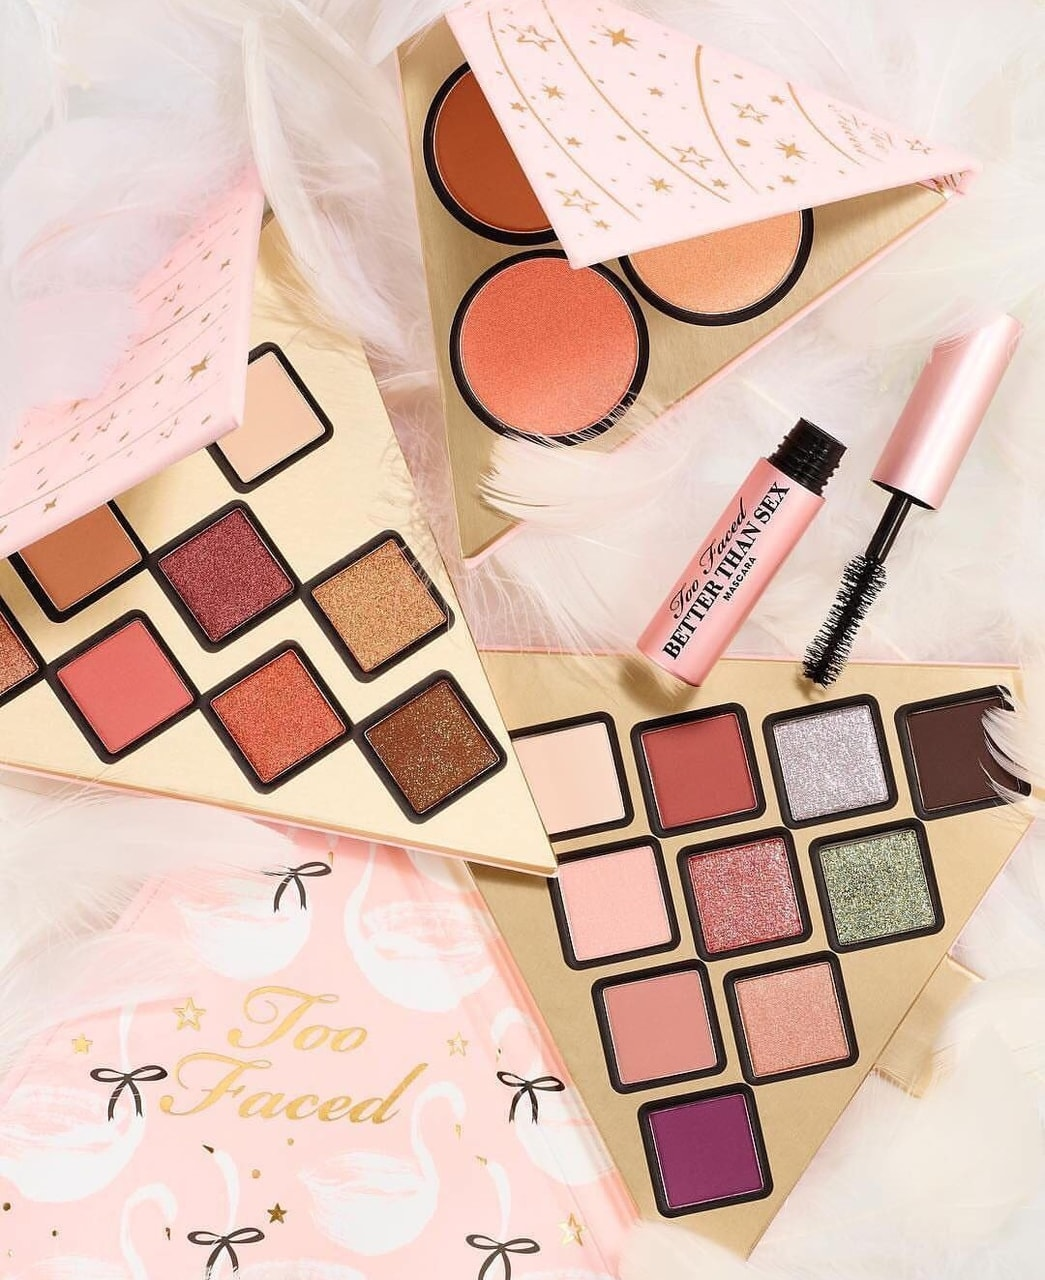 girly, pink, makeup and palette of shades